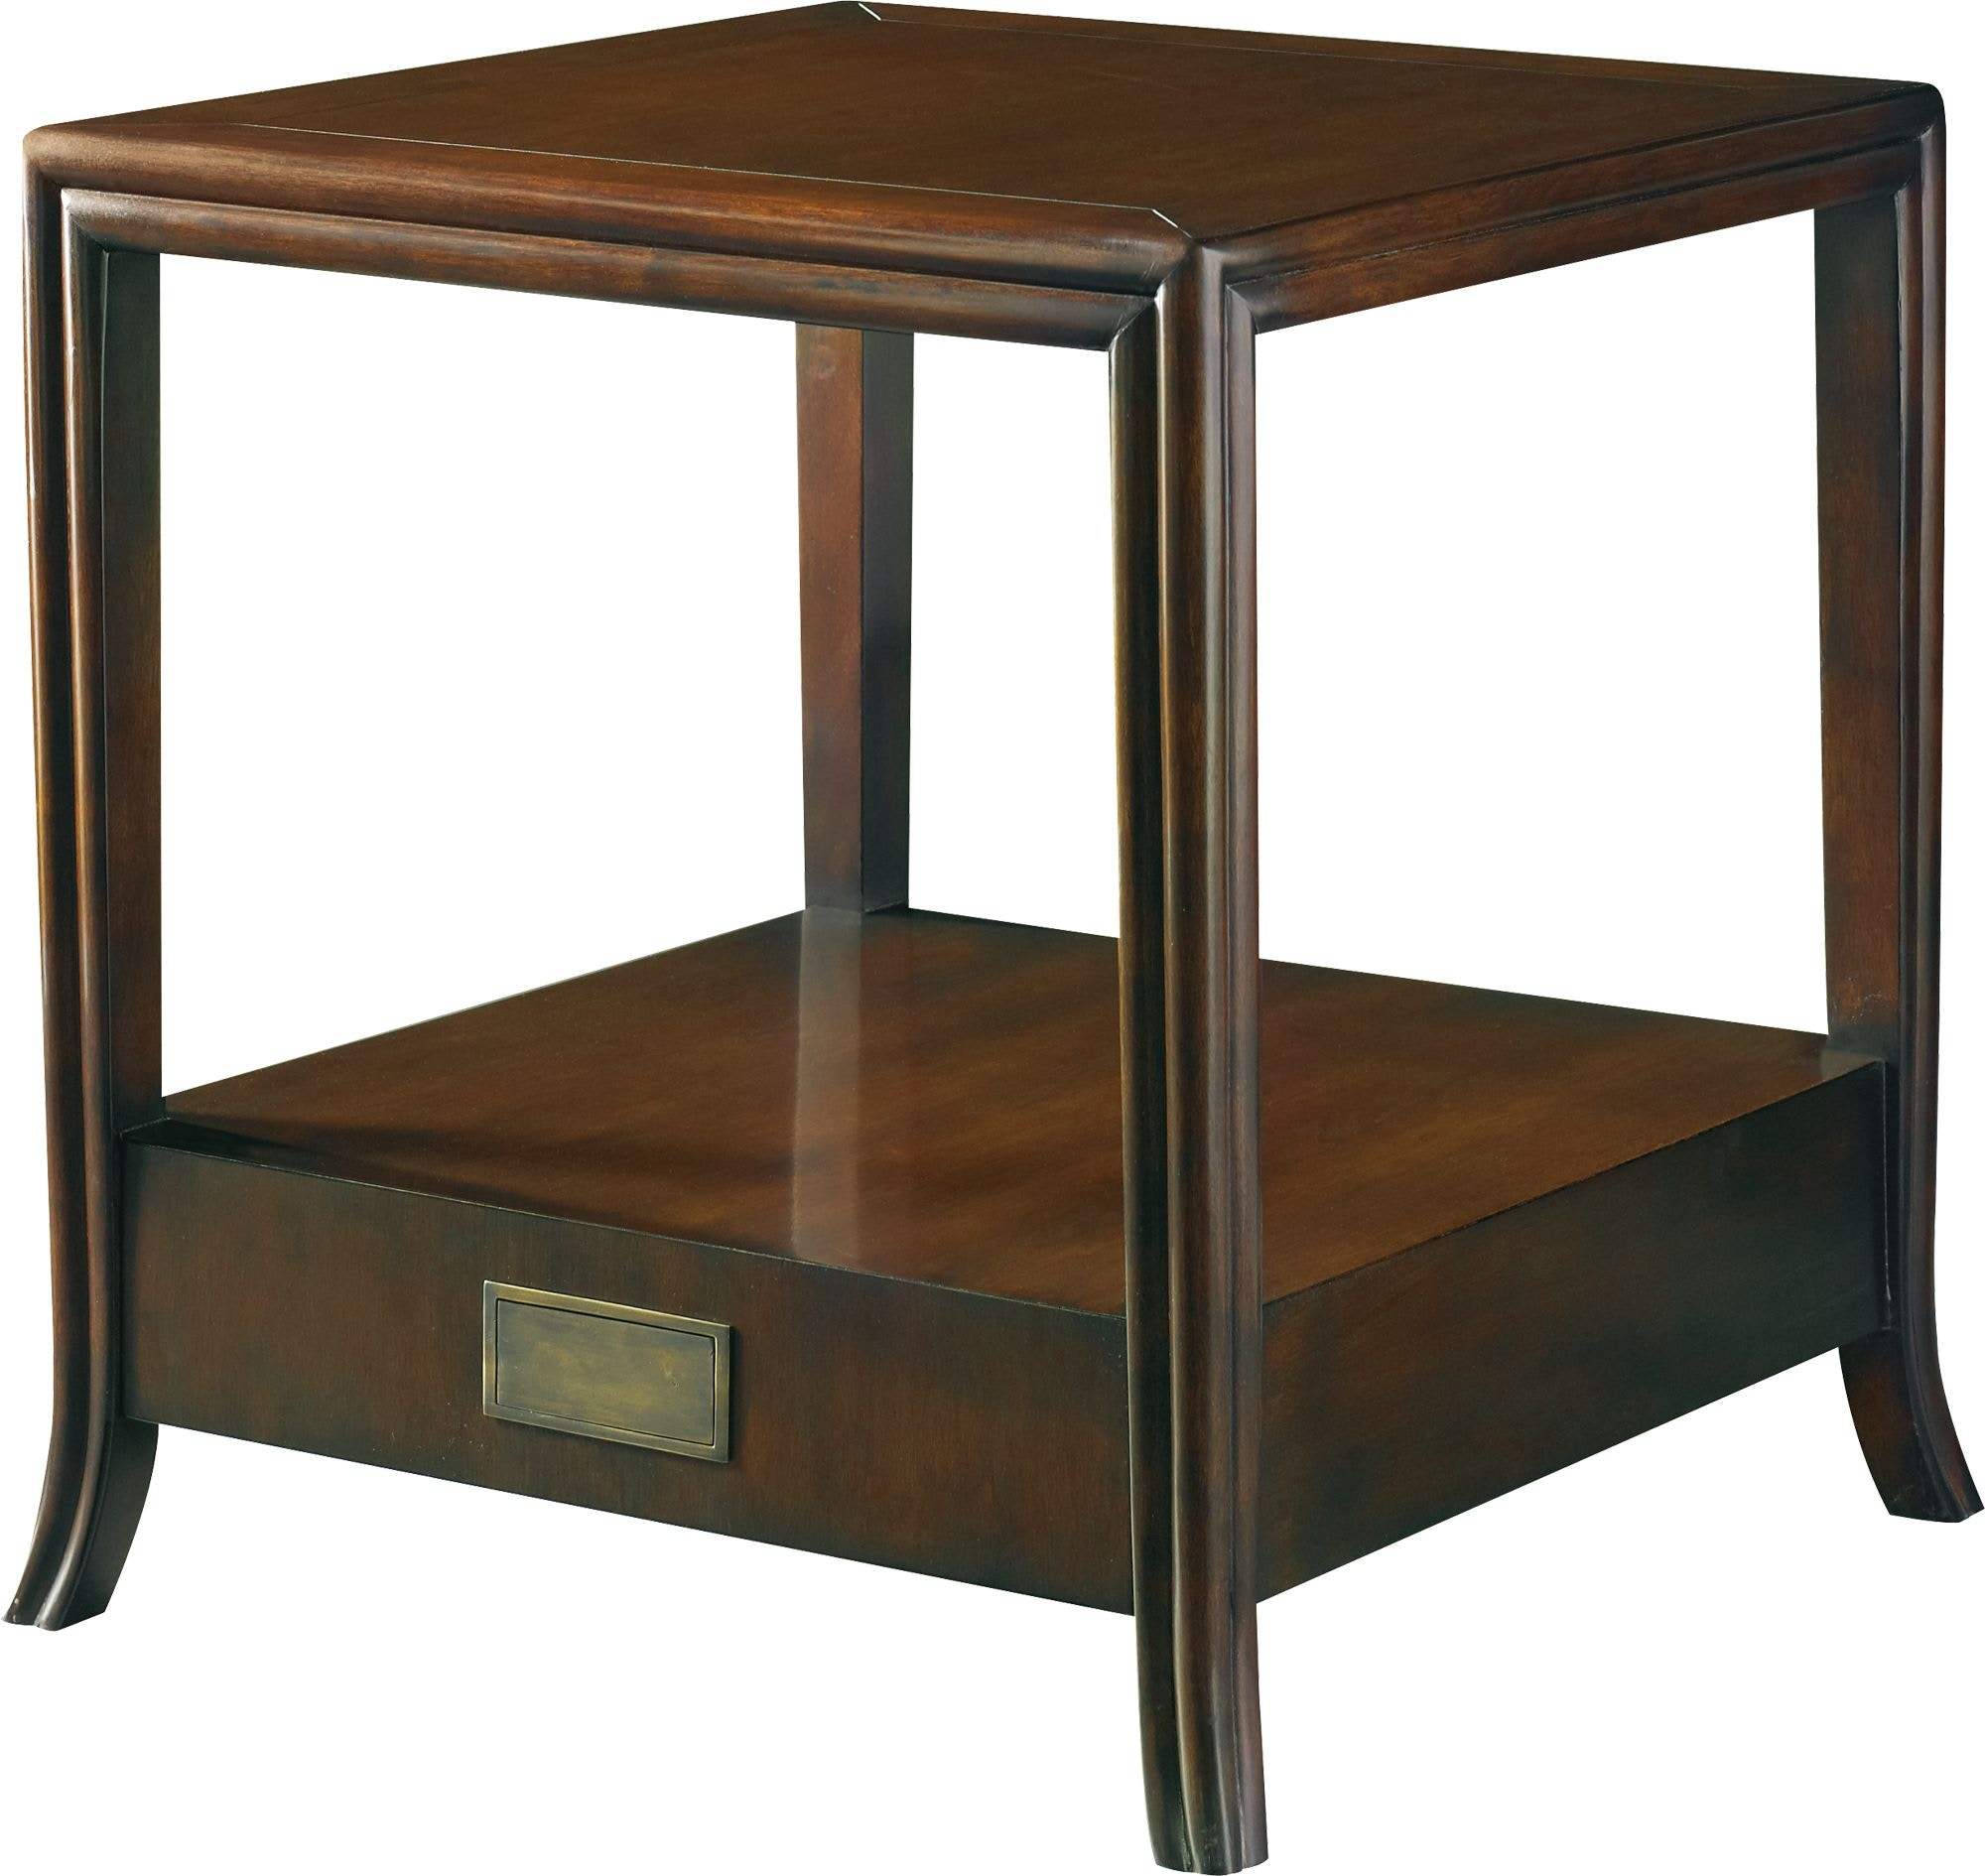 Baker Furniture 6656 Living Room Lexicon Morgen Side Table